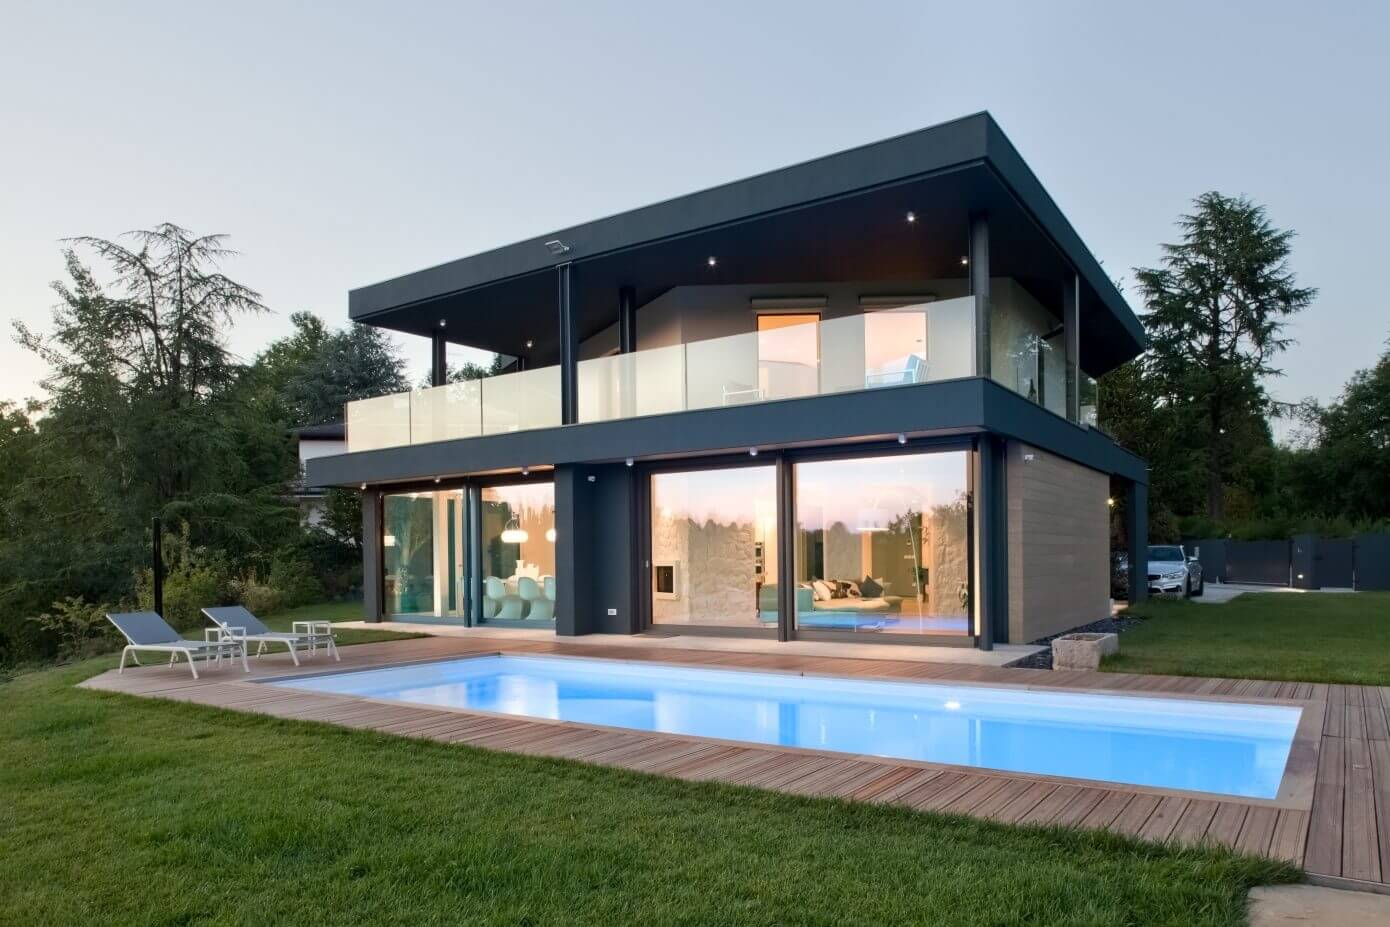 013 villa udine iarchitects homeadore for Belle case moderne